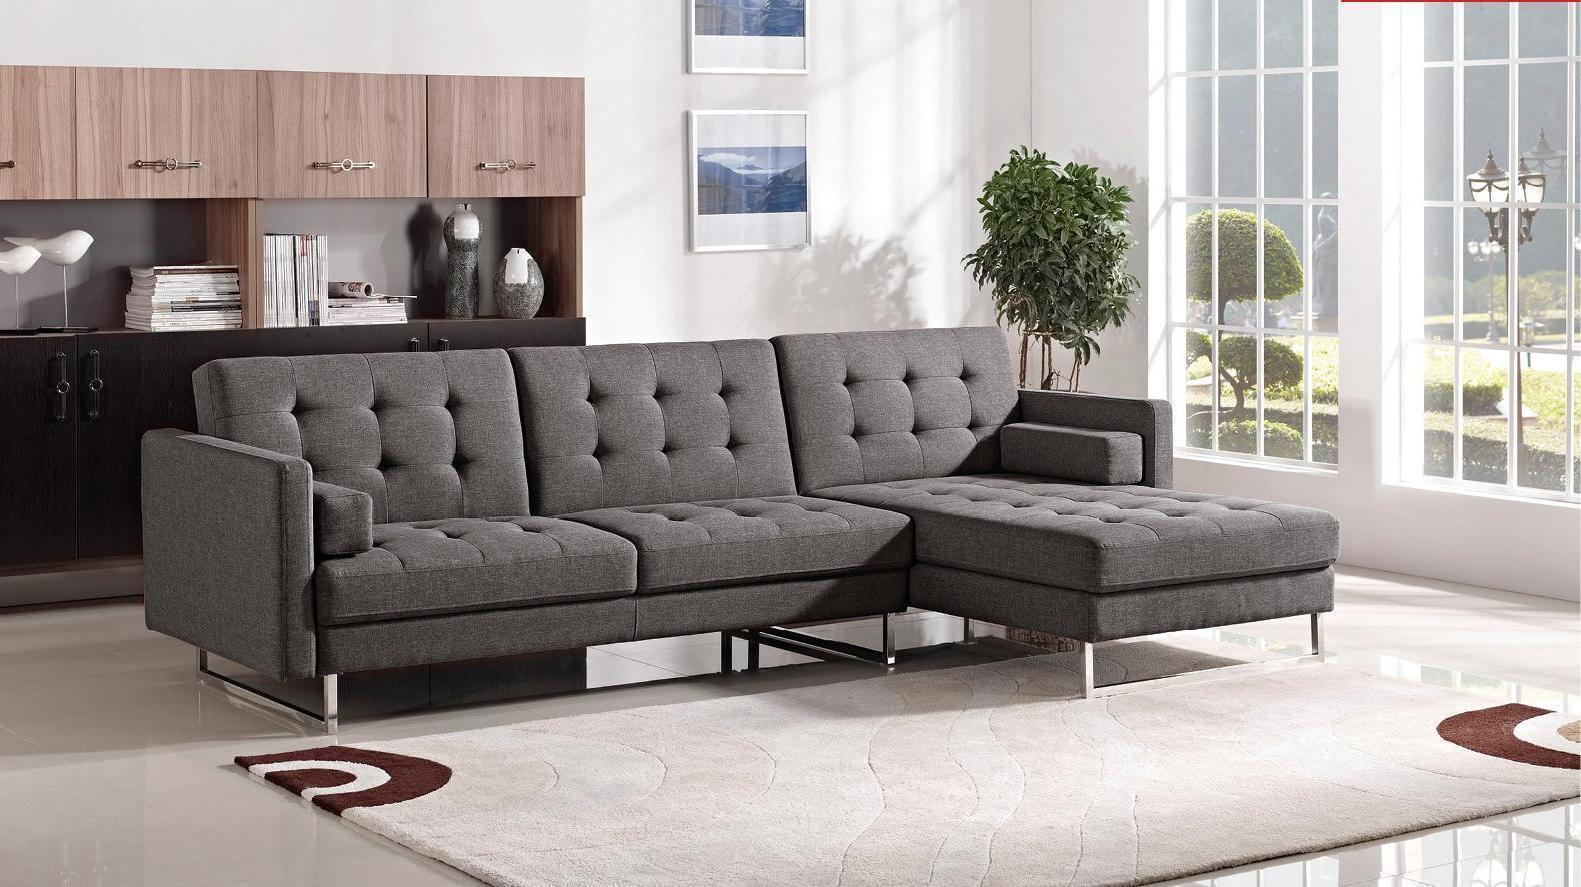 ESF Modern 1471 Grey Fabric Sectional Sofa Right Hand Chaise